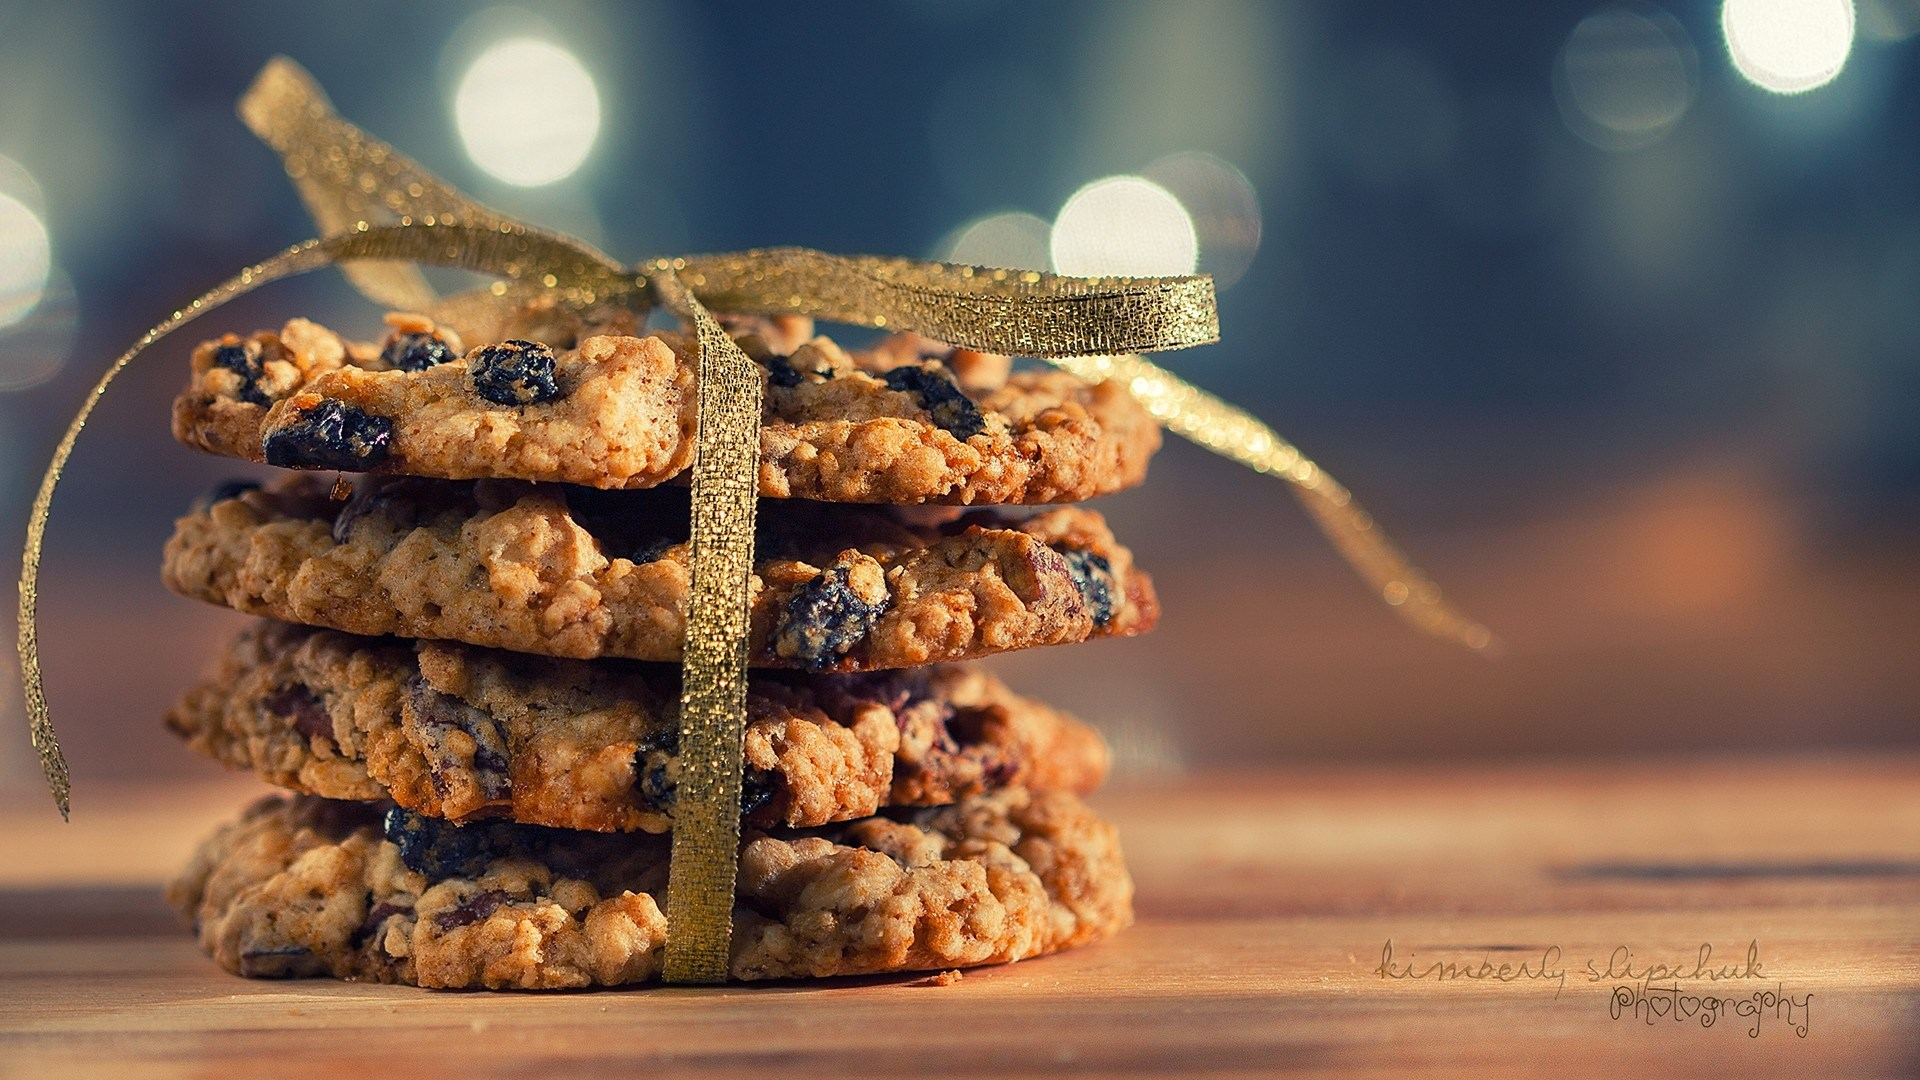 Chocolate Chip Cookies Desktop Wallpapers   Wallpaper High Definition 1920x1080